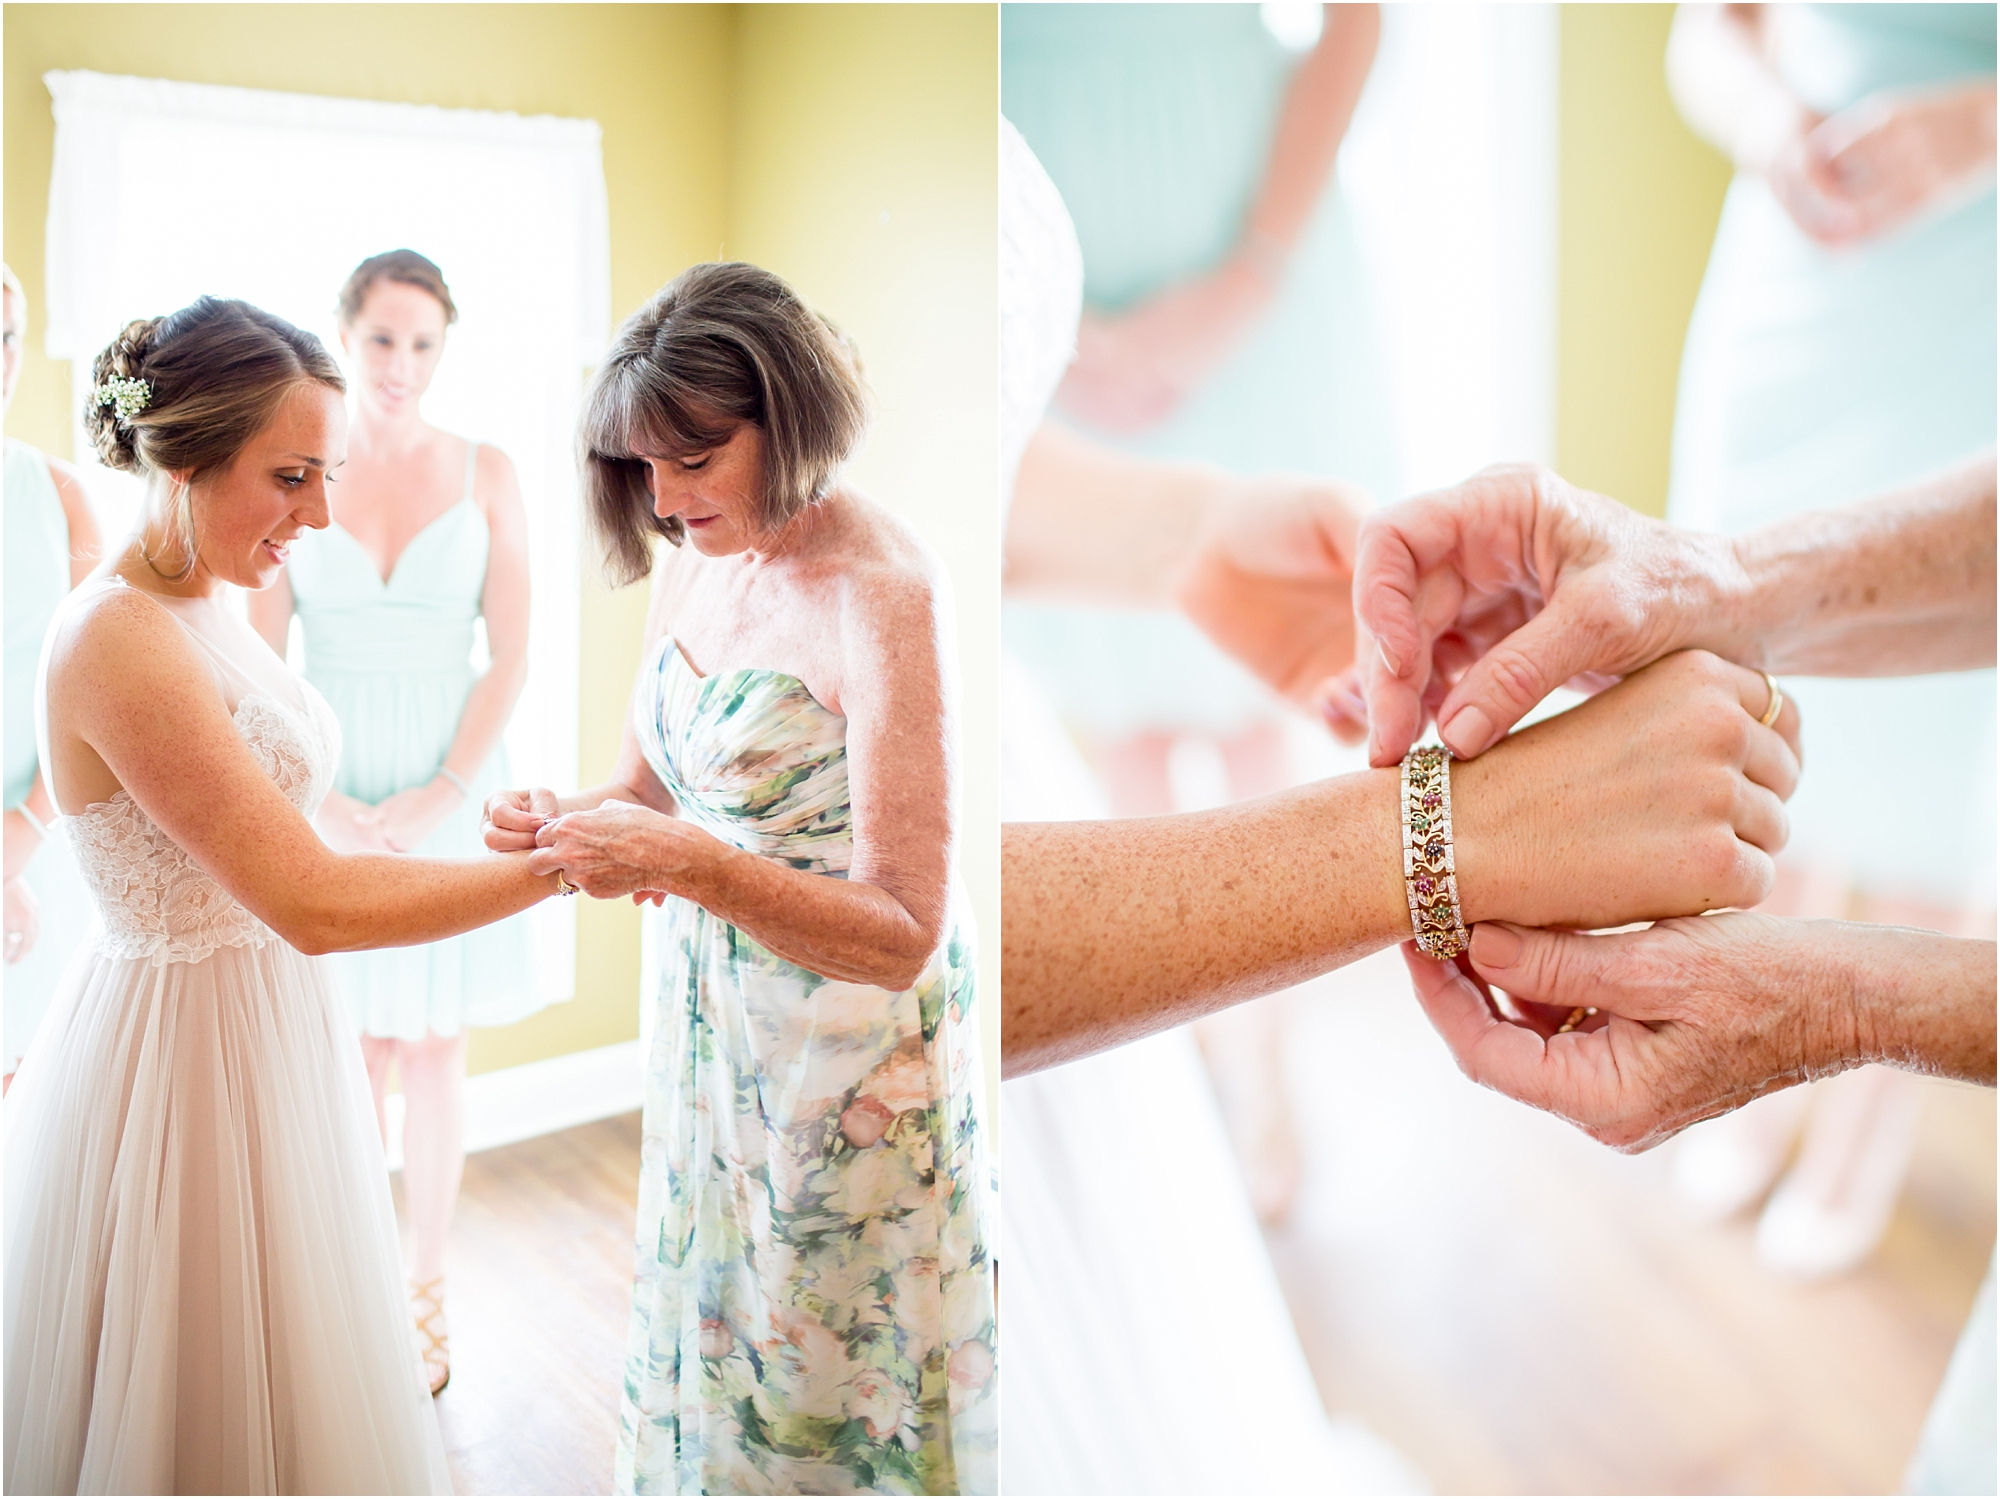 Herndon 1-Getting Ready-195_anna grace photography baltimore maryland wedding photographer pond view farm photo.jpg